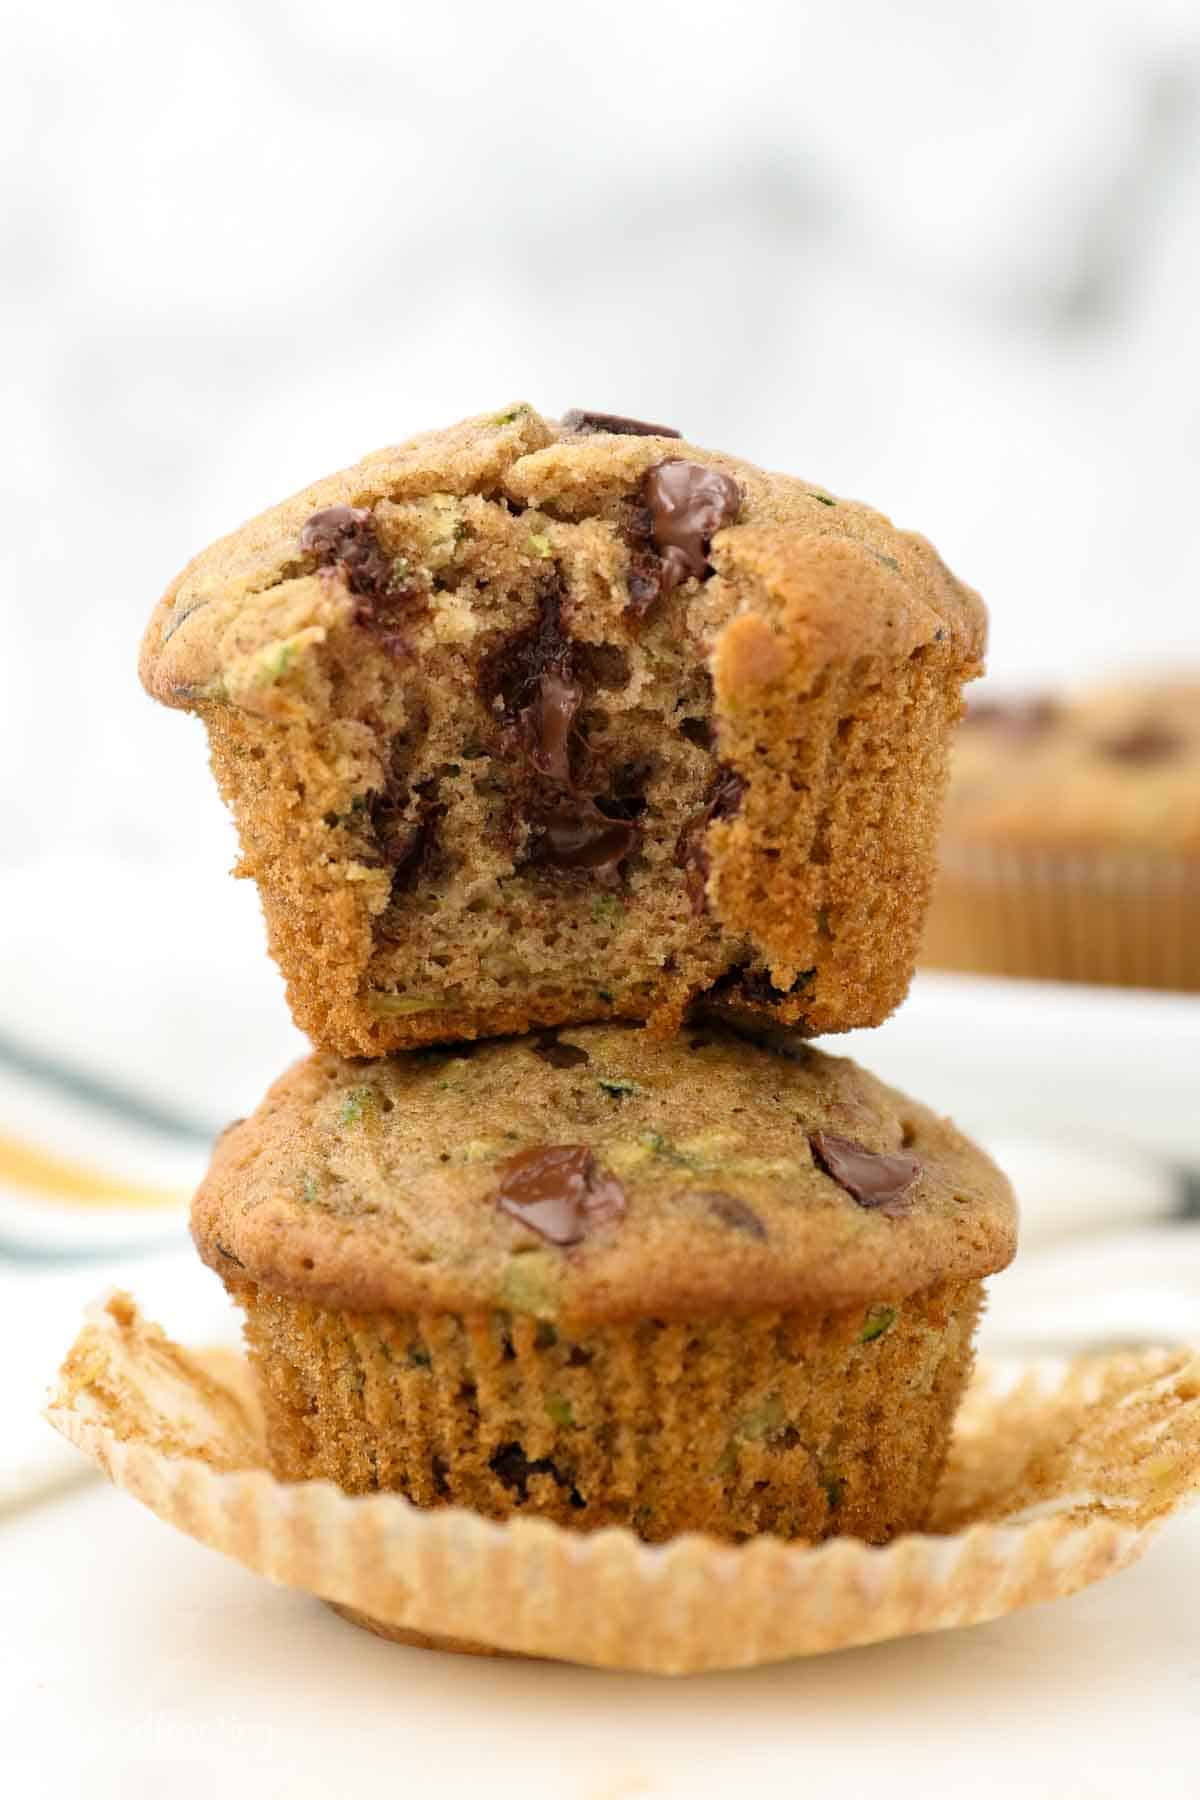 Two chocolate chip zucchini muffins stacked on each other, the top one with a missing bite